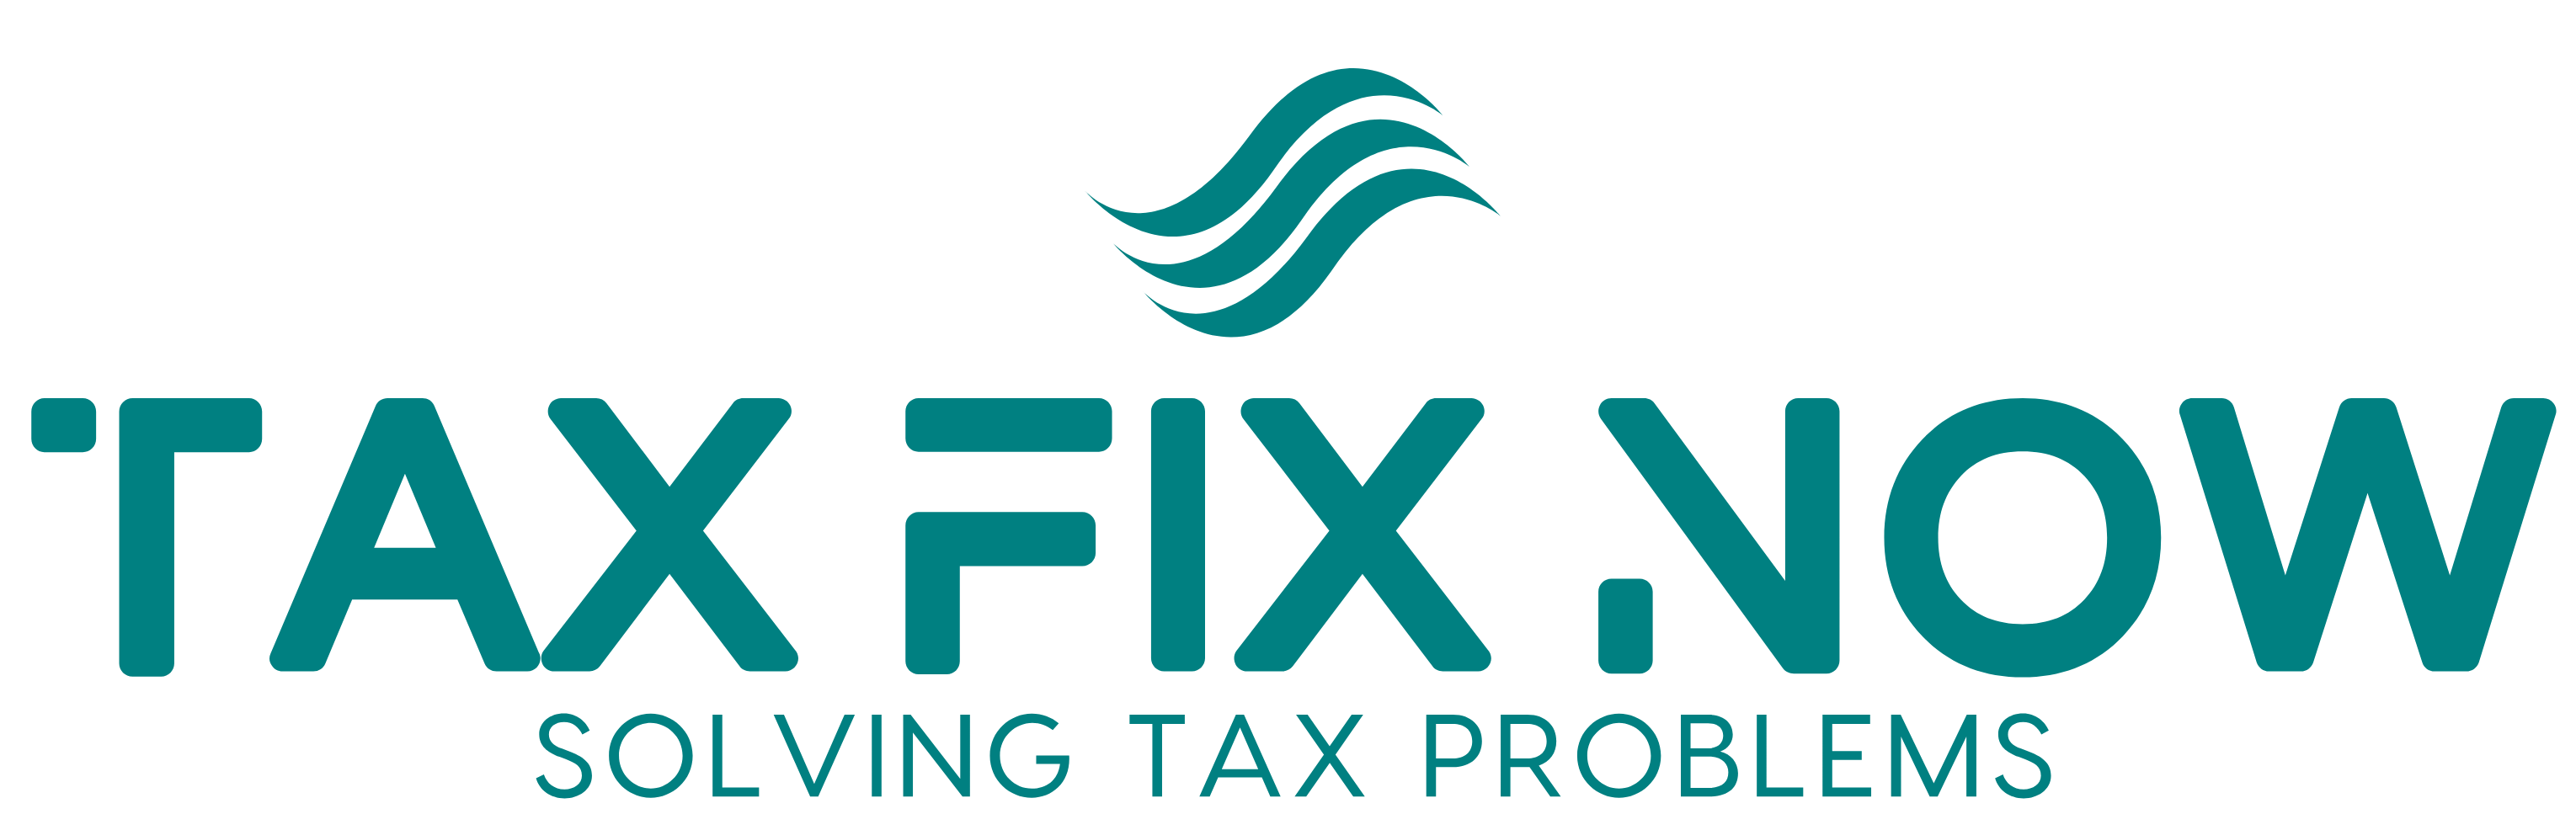 Highland Village, TX Bookkeeping Firm | Calculators Page | Tax Fix Now